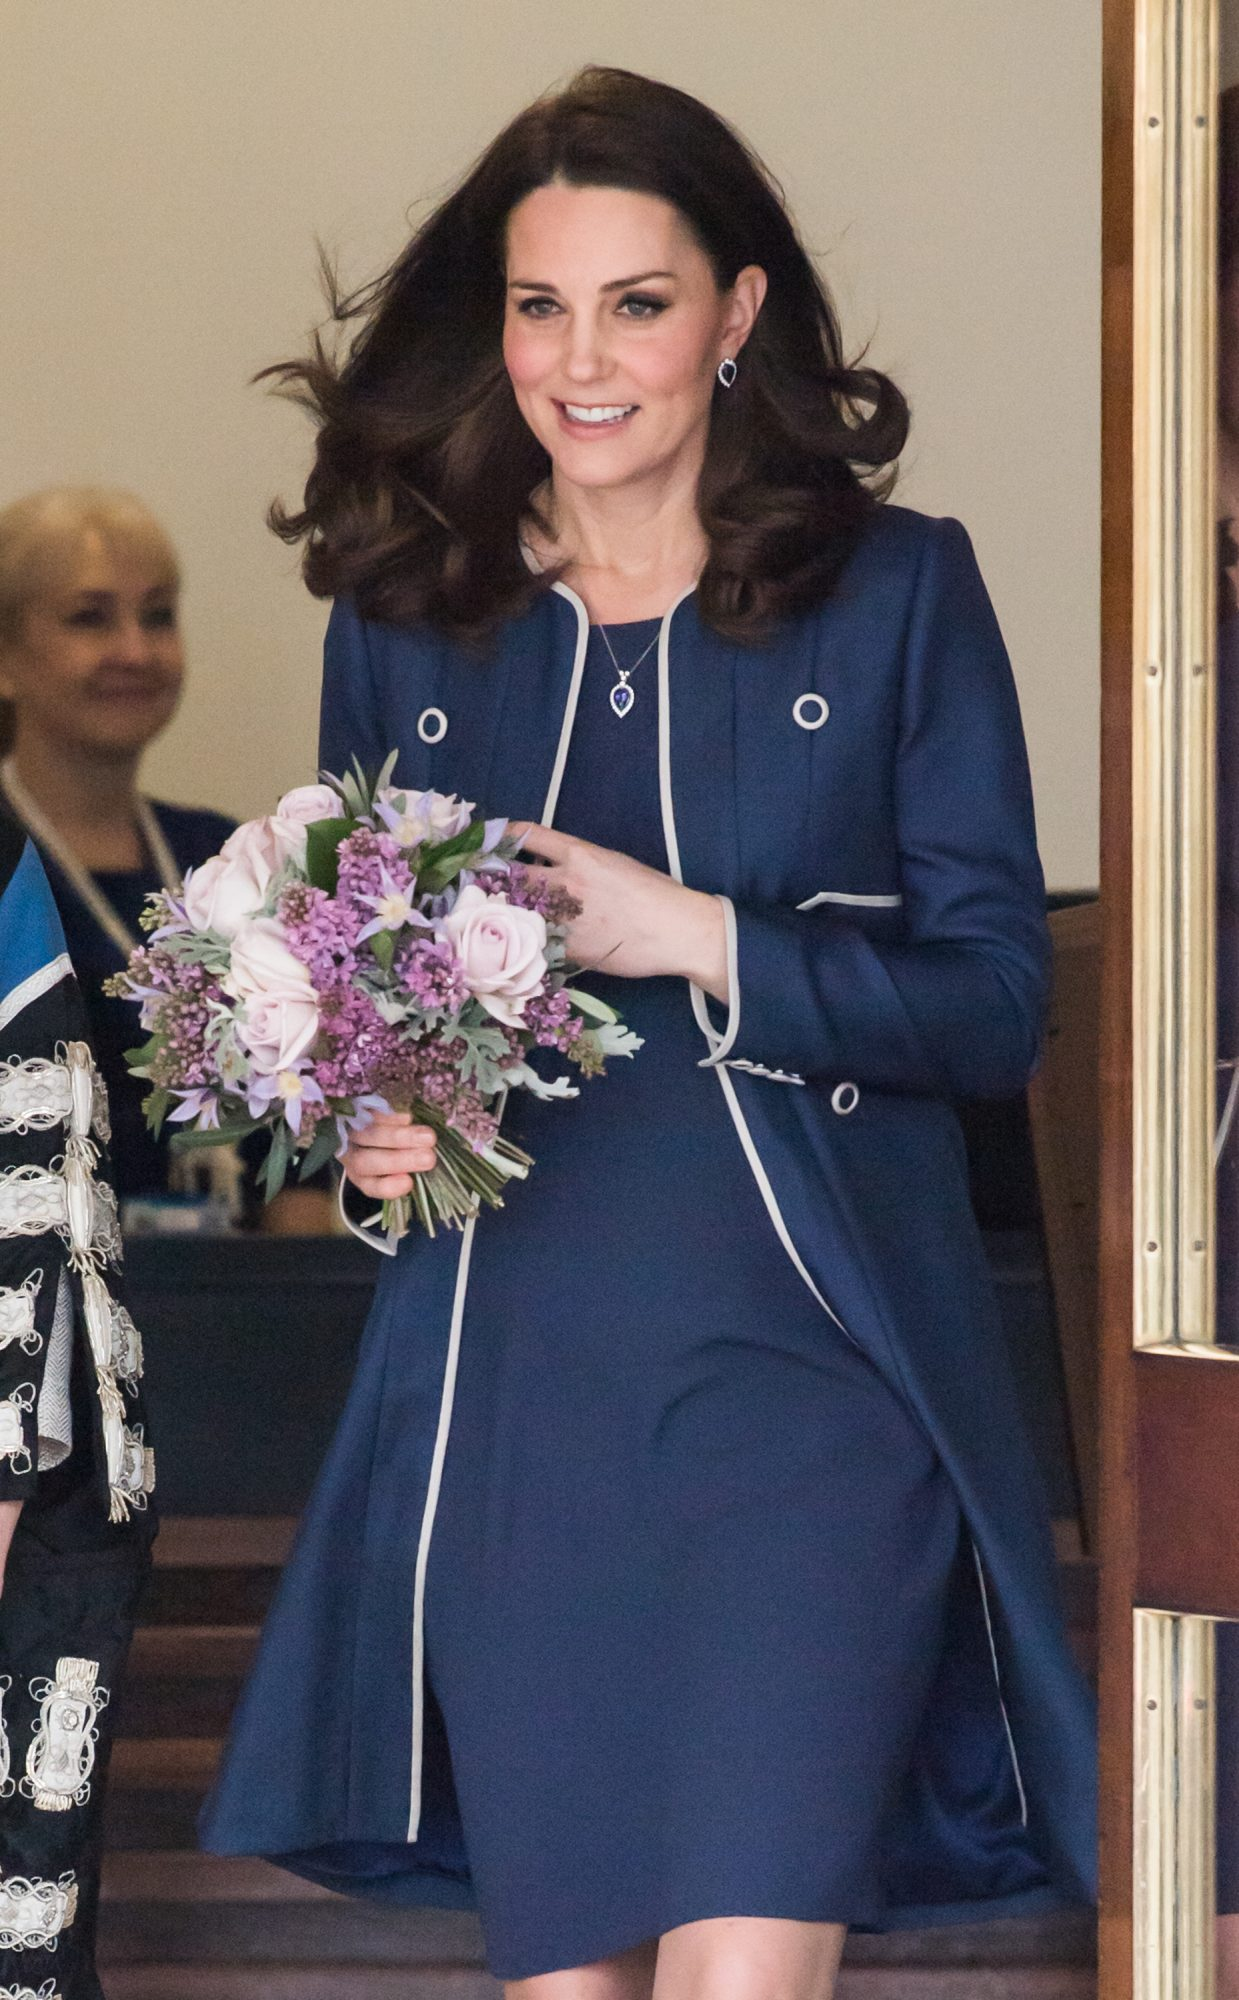 Kate Middleton Spent the Day with Gynecologists, in a Battle Against Stigma